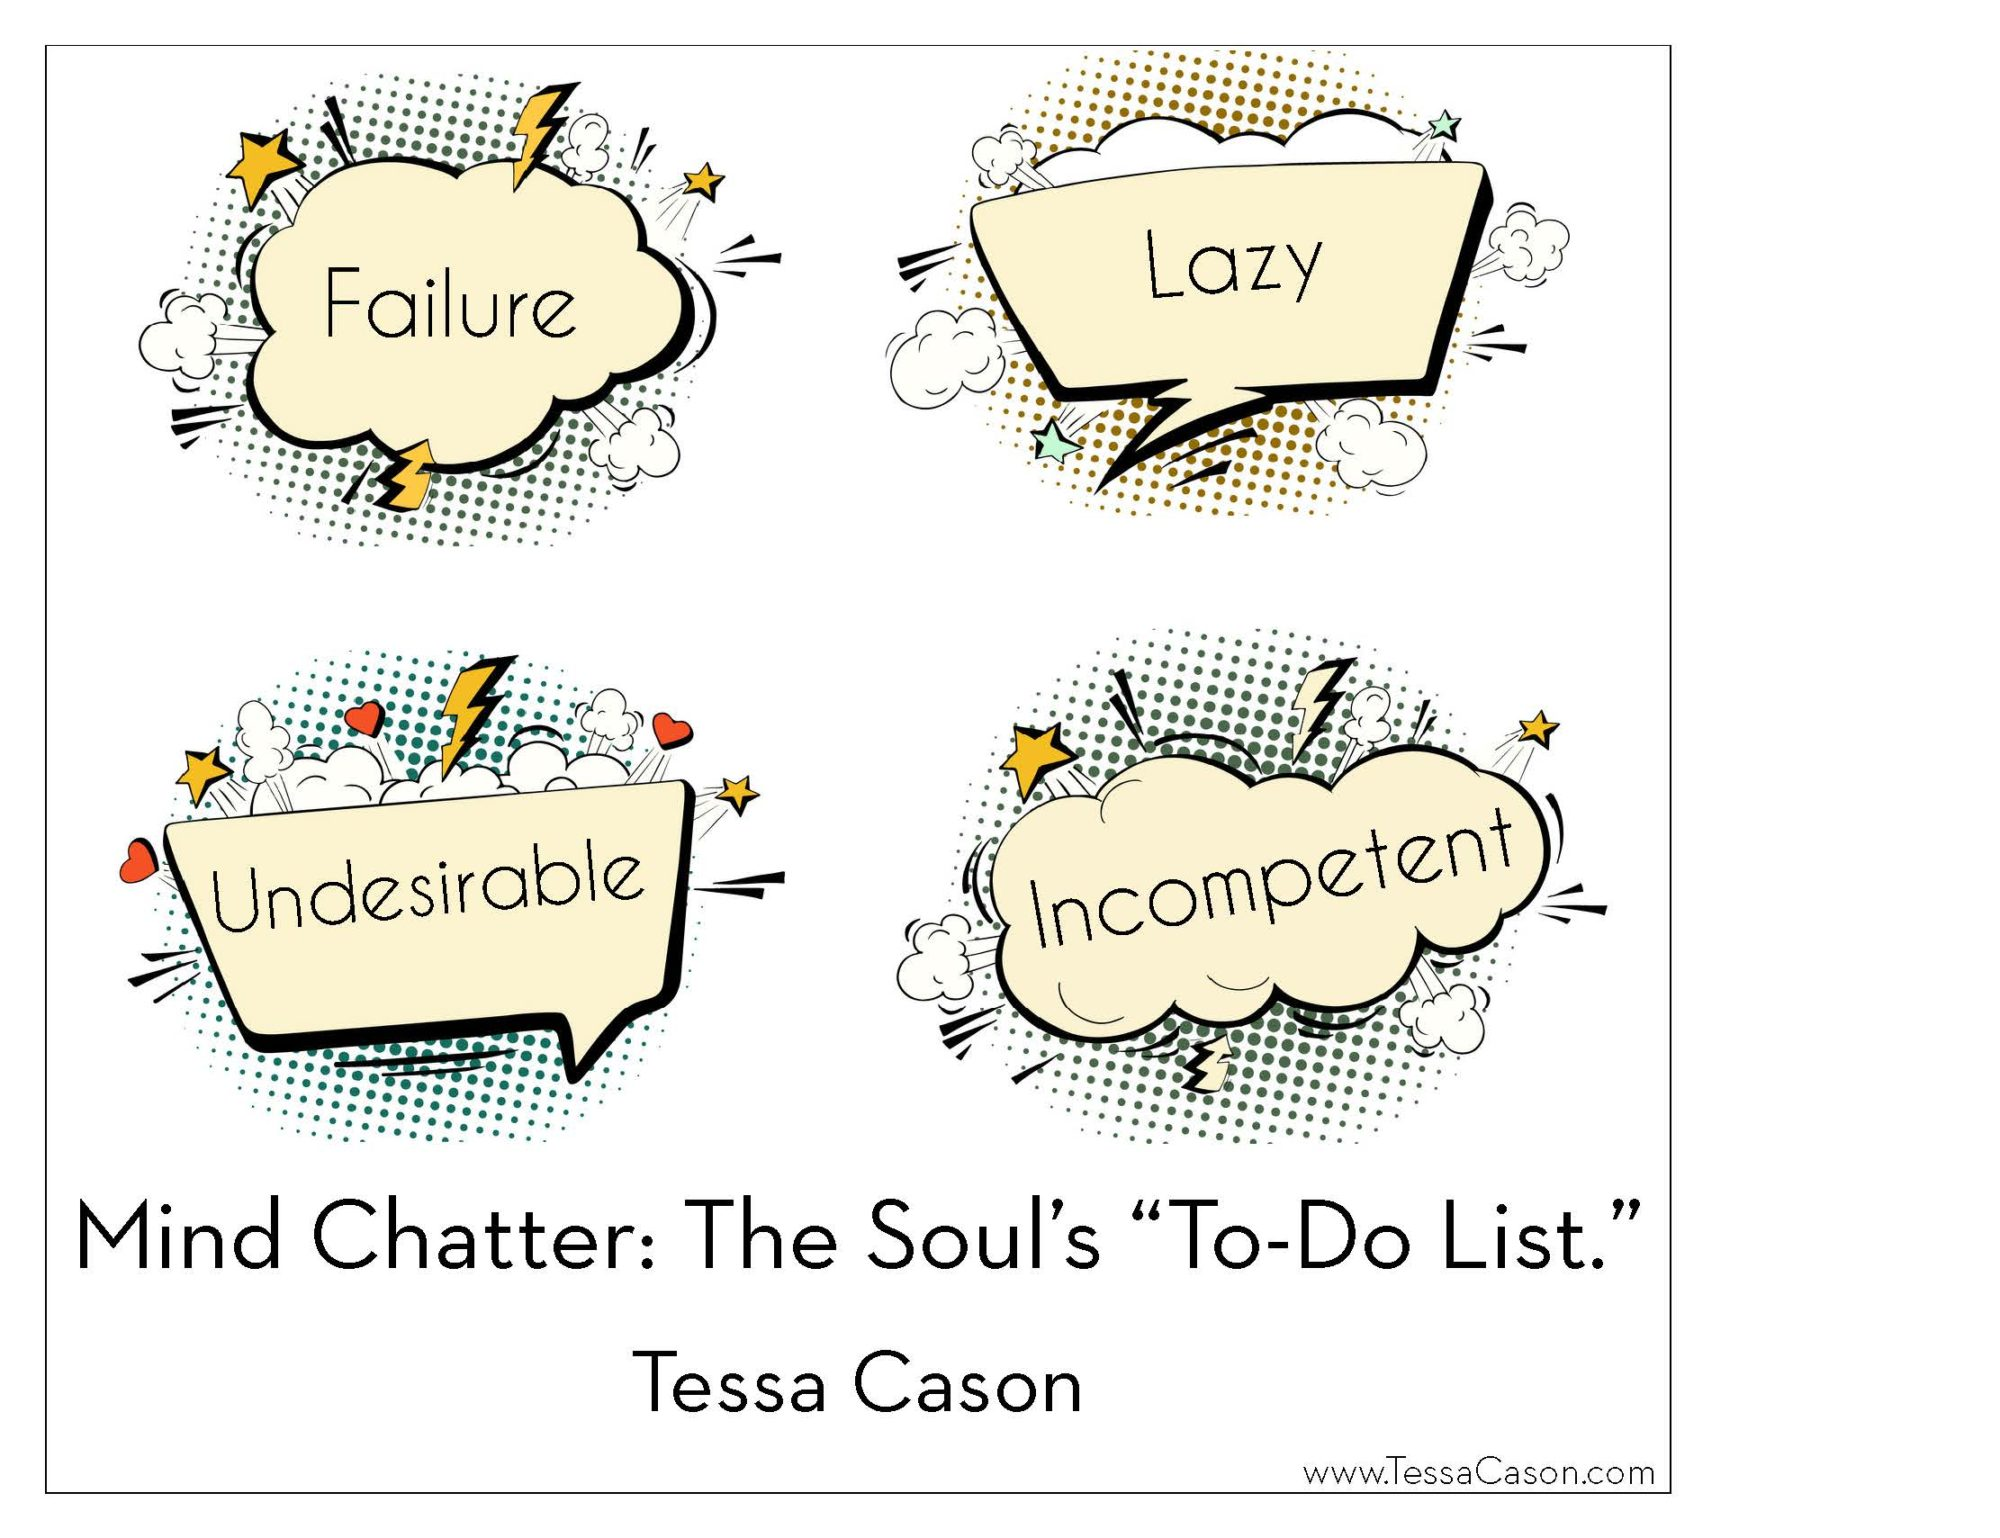 Mind Chatter The Soul's to do list